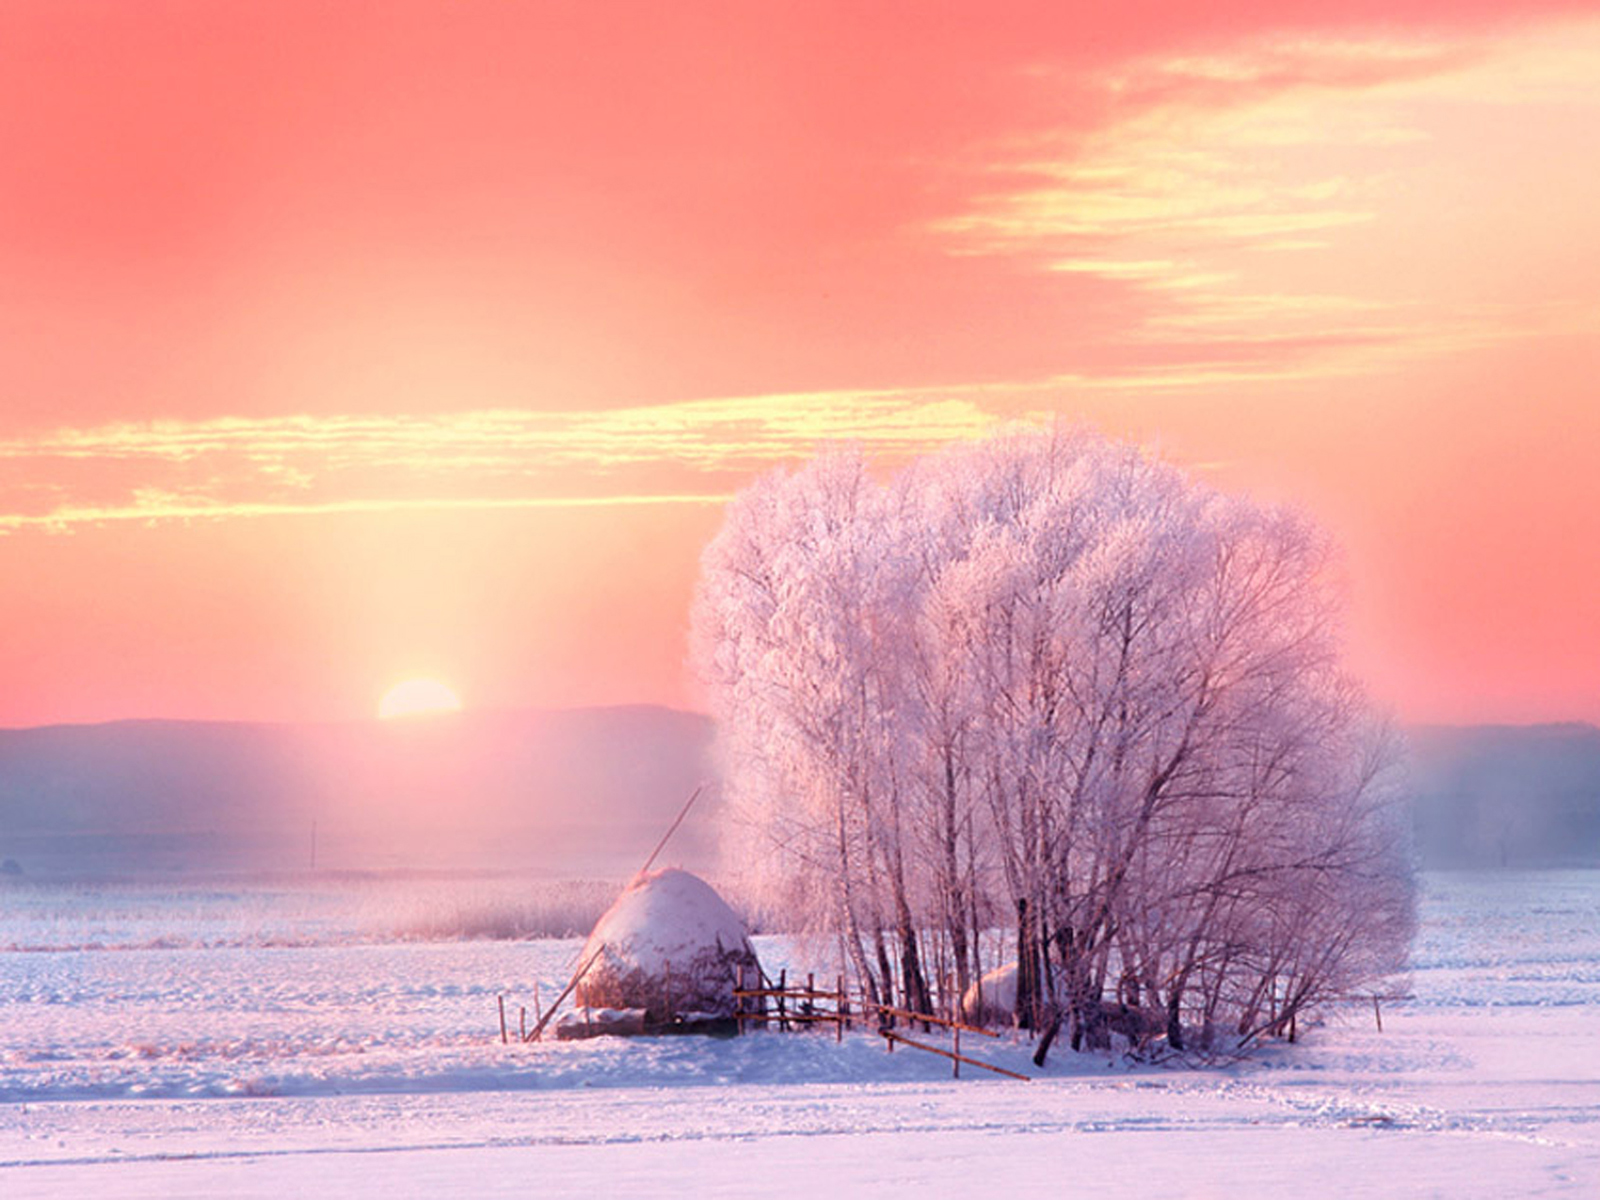 Windows 8 Car Tire Wallpapers Amazing Snow Trees House And Orange Sky Hd Wallpaper